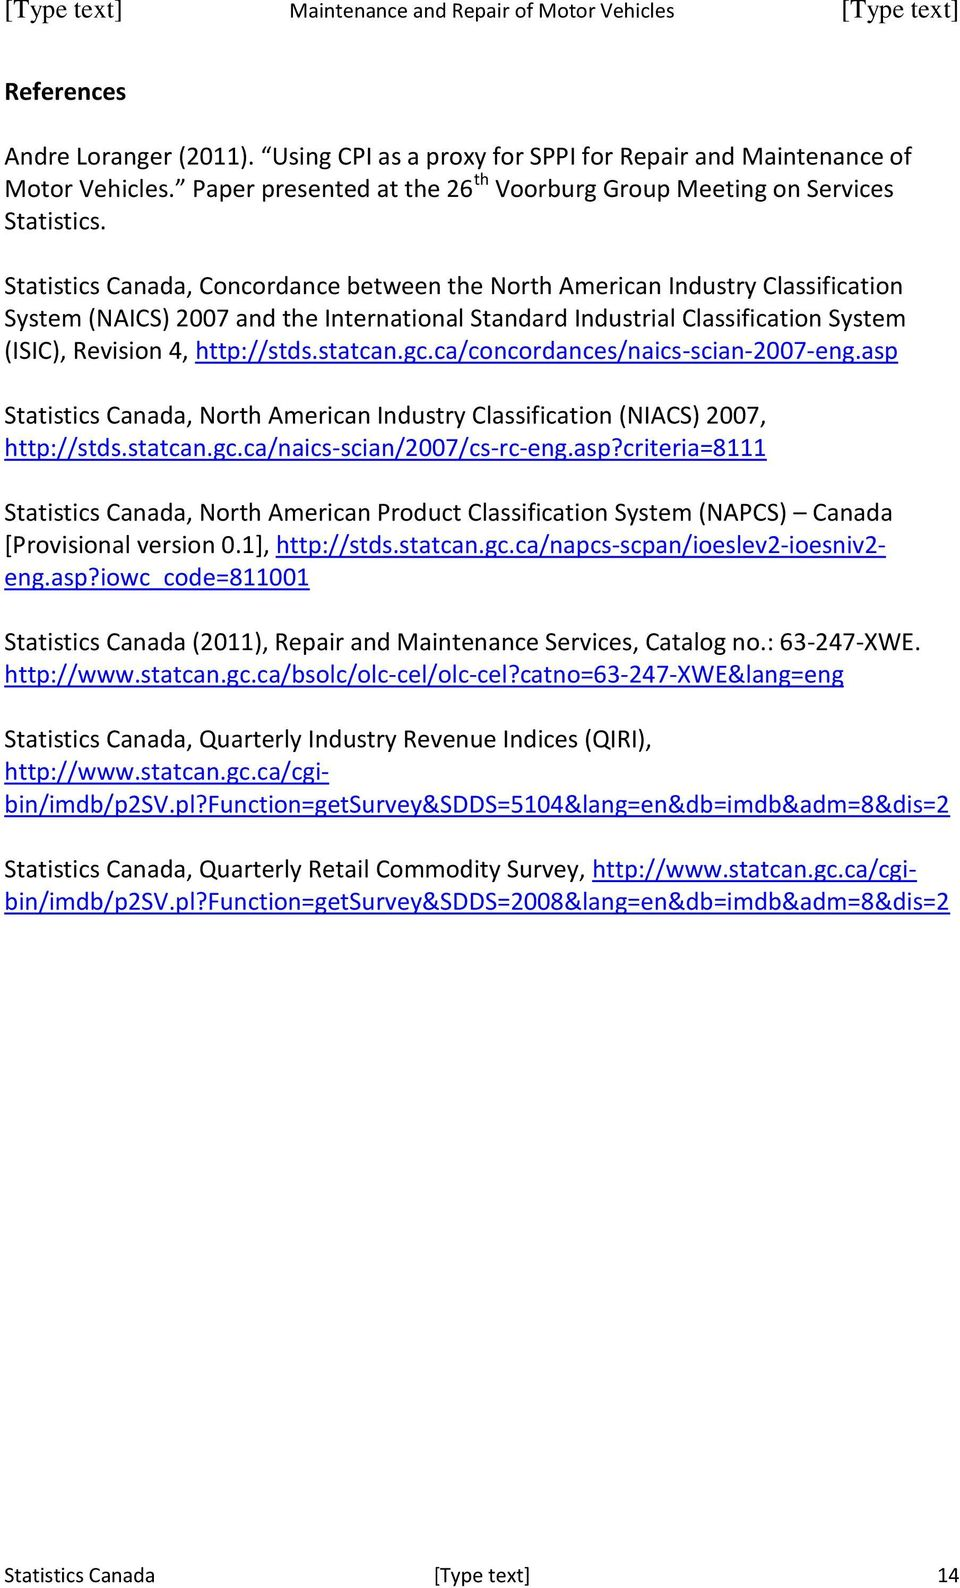 statcan.gc.ca/concordances/naics-scian-2007-eng.asp Statistics Canada, North American Industry Classification (NIACS) 2007, http://stds.statcan.gc.ca/naics-scian/2007/cs-rc-eng.asp?criteria=8111 Statistics Canada, North American Product Classification System (NAPCS) Canada [Provisional version 0.